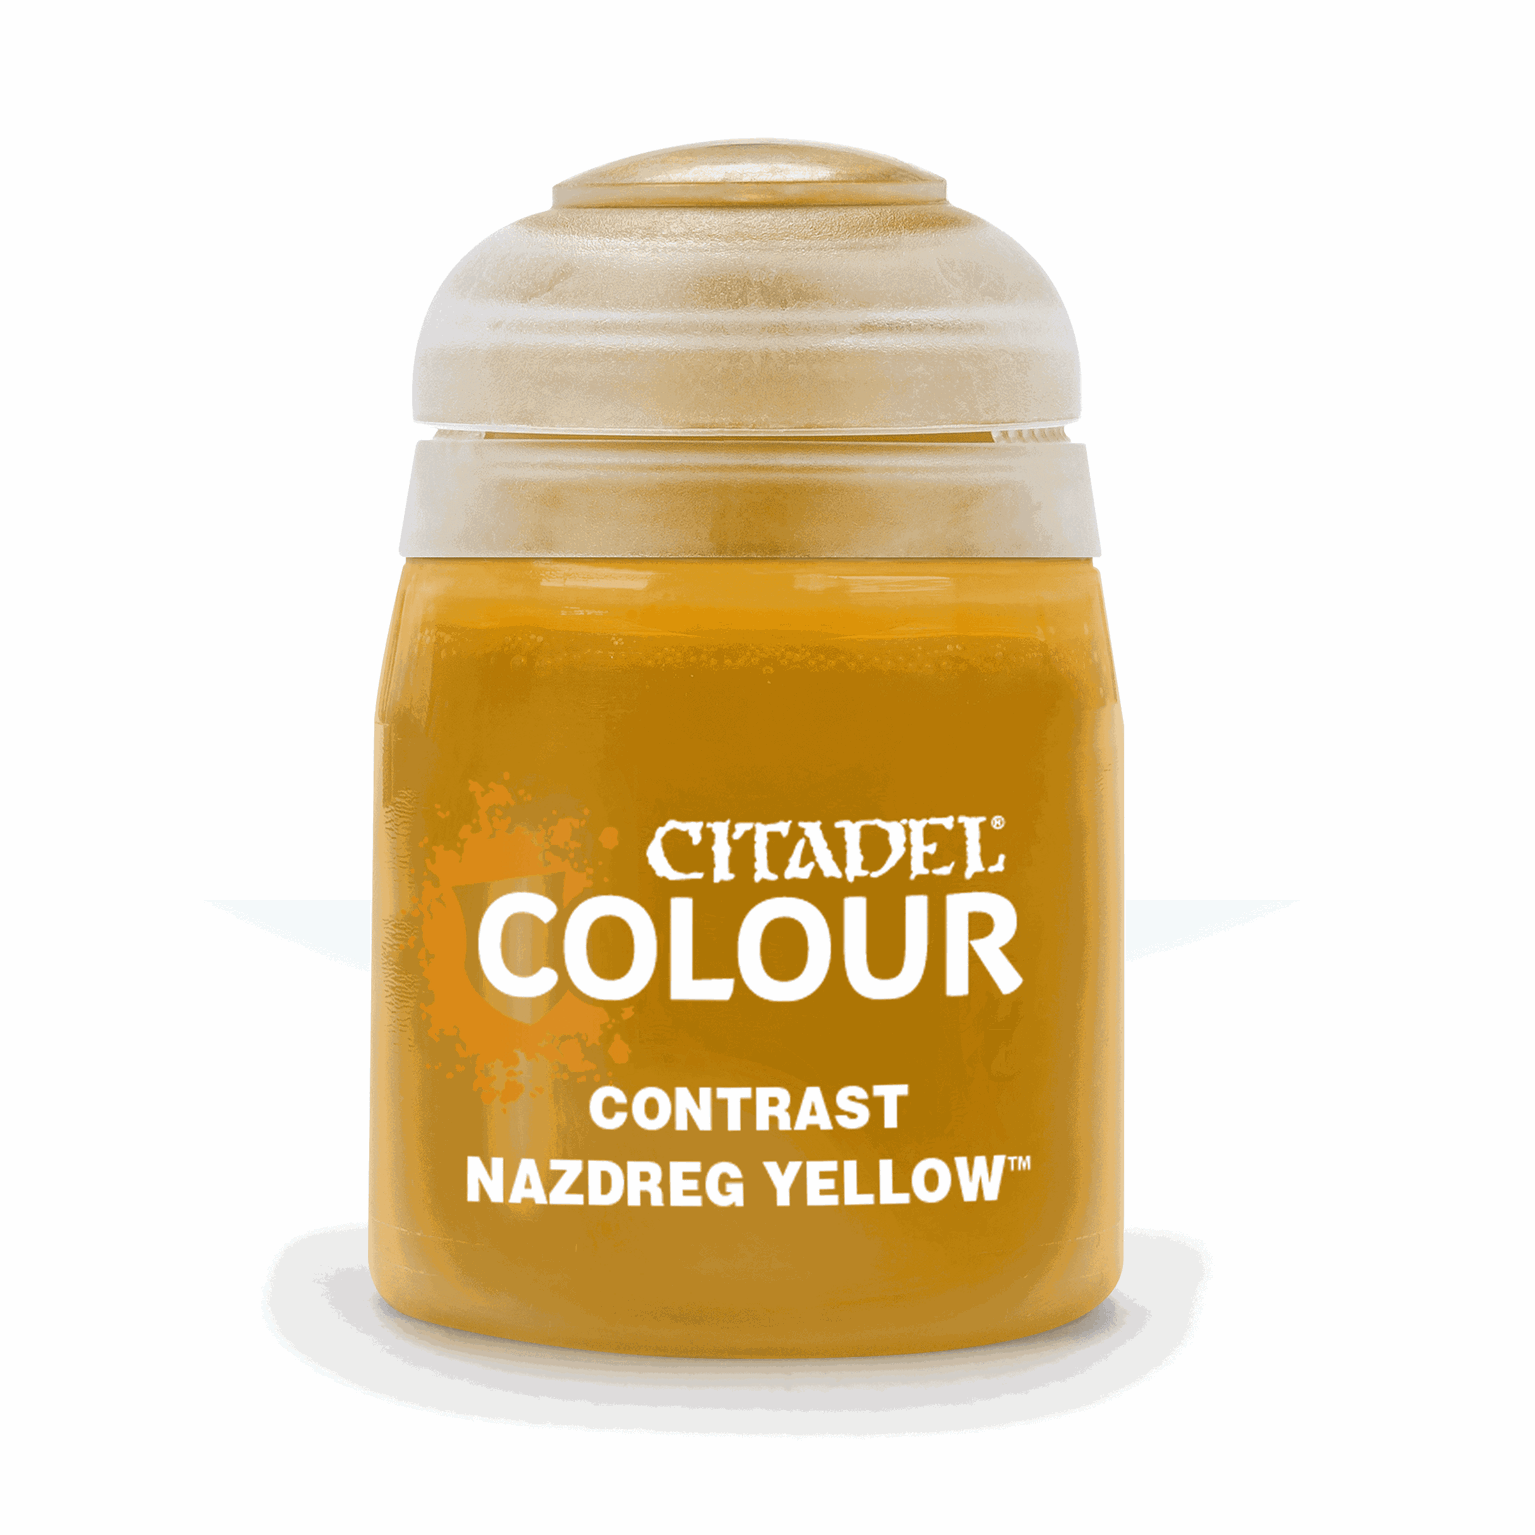 CITADEL CONTRAST Nazdreg Yellow PAINT POT